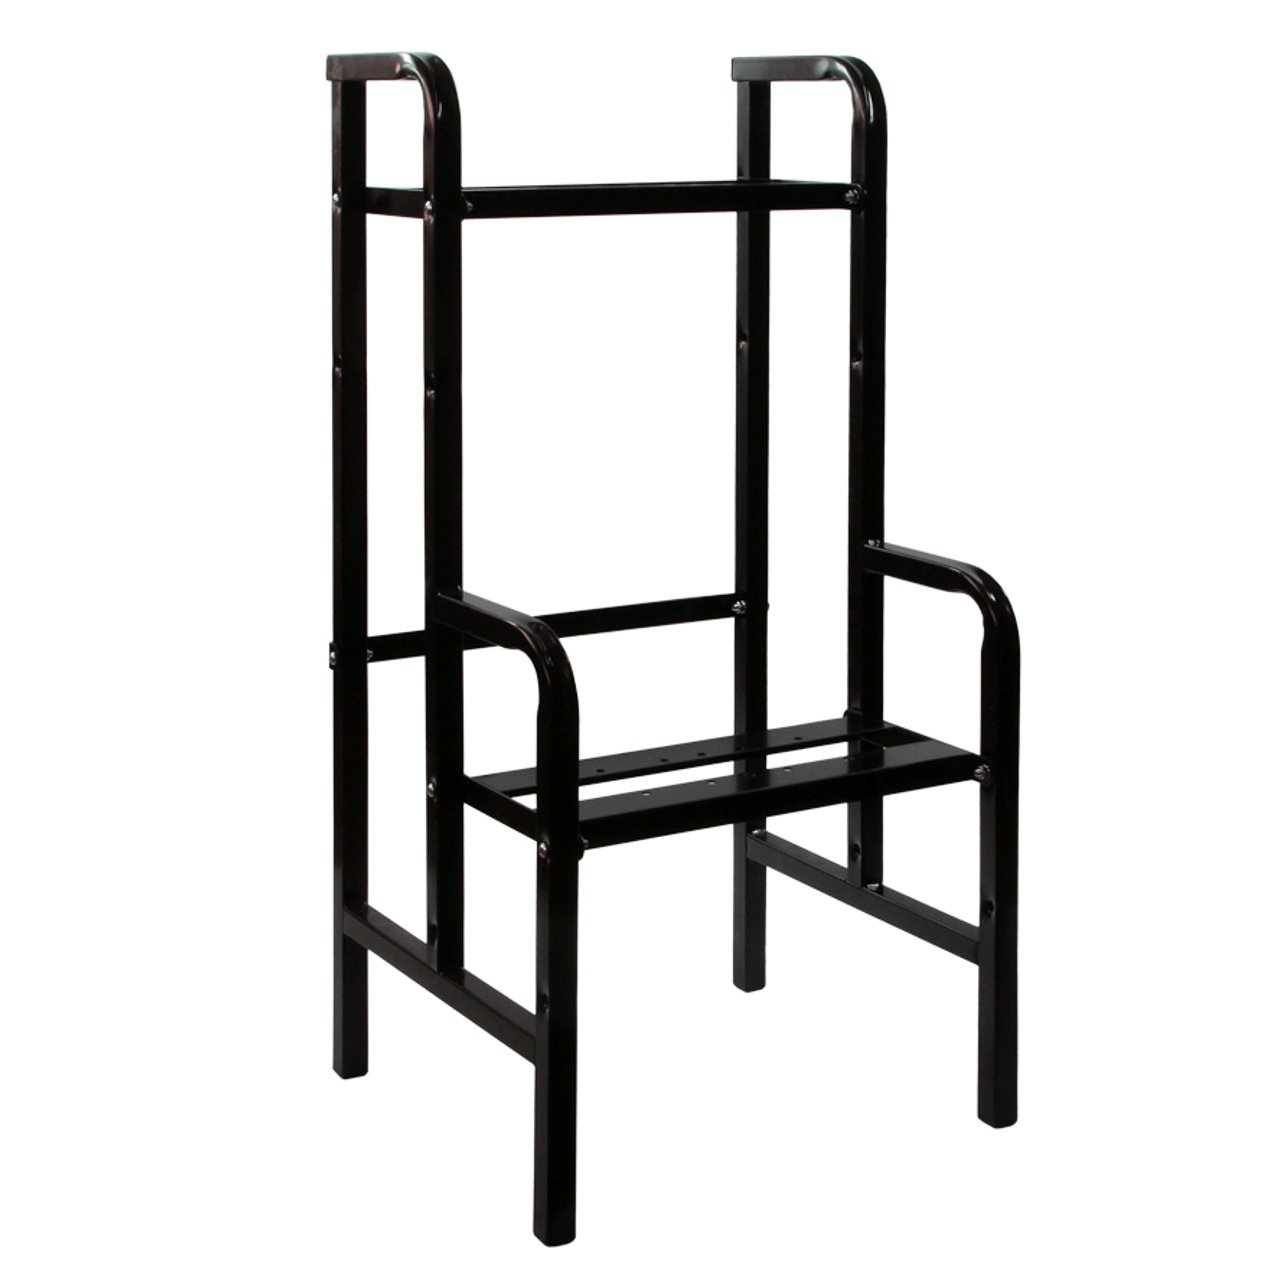 Steel 4 Unit Step Stand